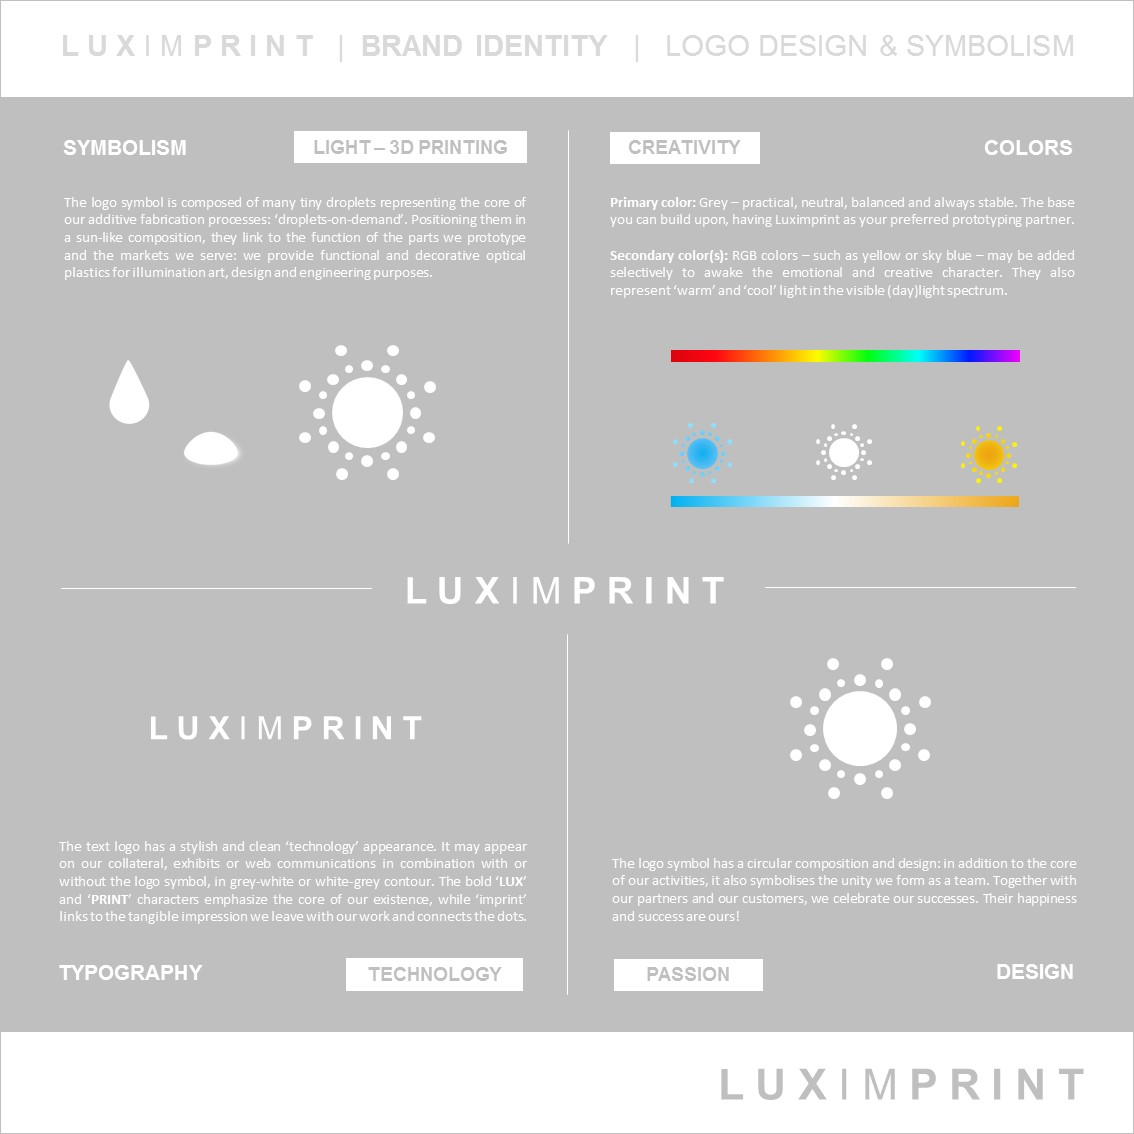 Image telling the Brand Story of Luximprint